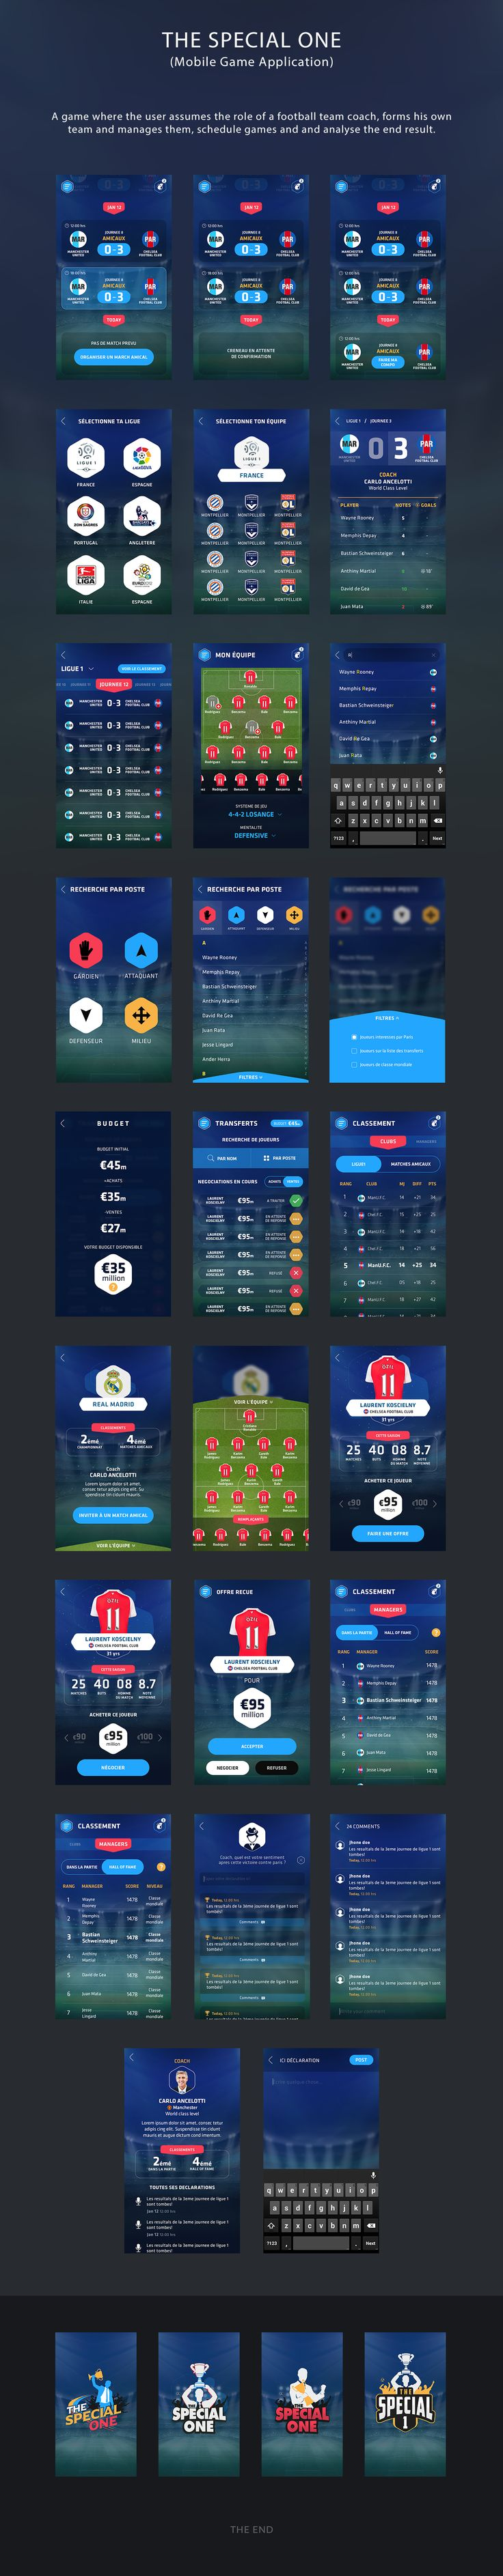 The special one is a fantasy football game concept based on existing games like football Manager.